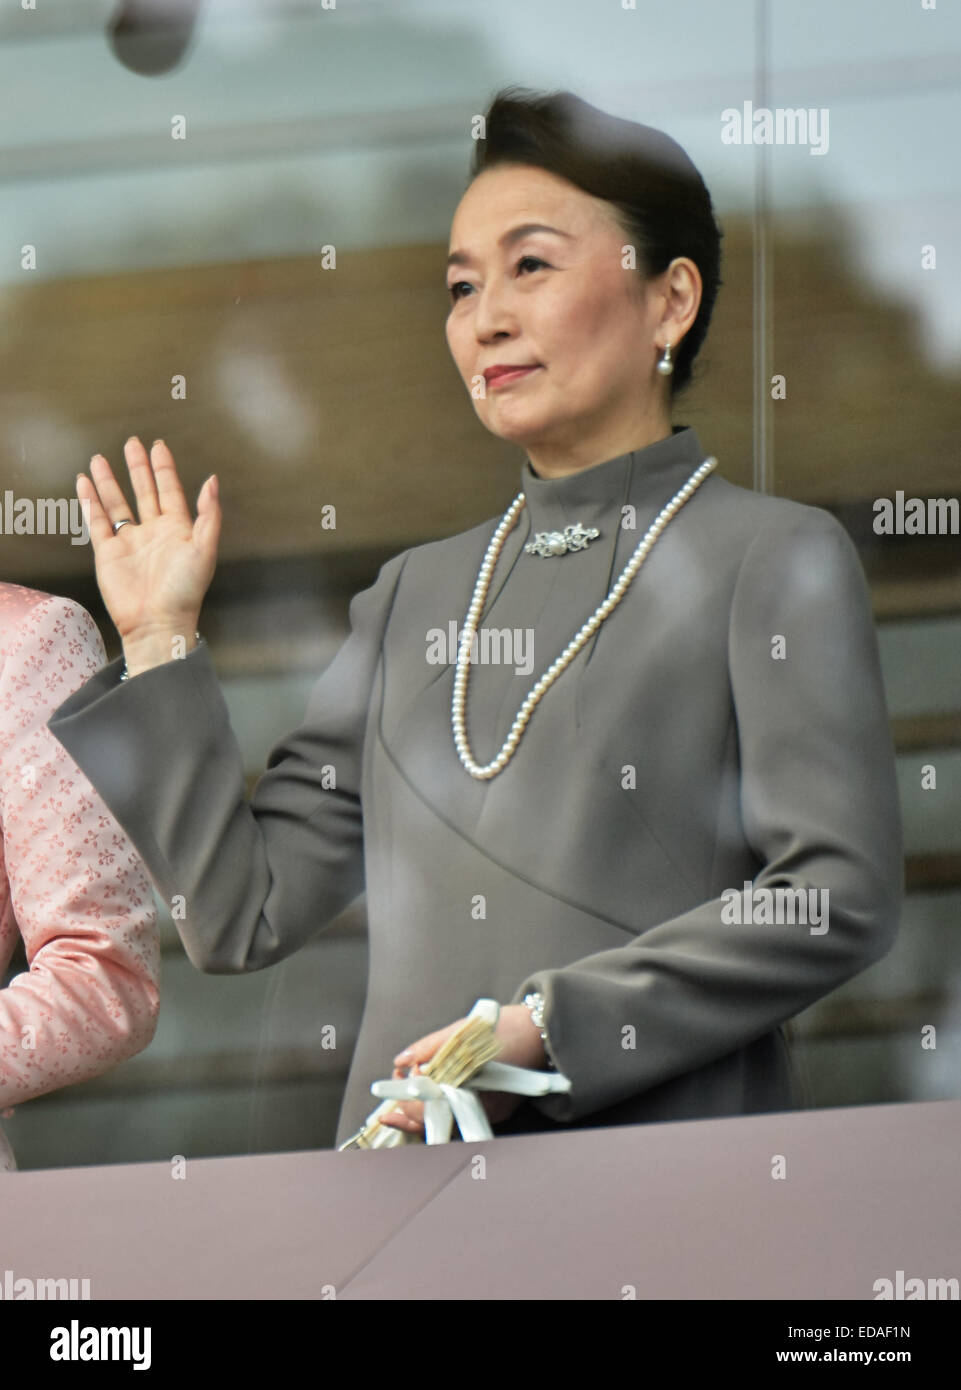 Emperor, Akihito, January 2, 2015, Tokyo, Japan : Japan's Princess Nobuko waves to well-wishers during a New Year public appearance at the East Plaza, Imperial Palace in Tokyo, Japan, on January 2, 2015. Credit:  AFLO/Alamy Live News